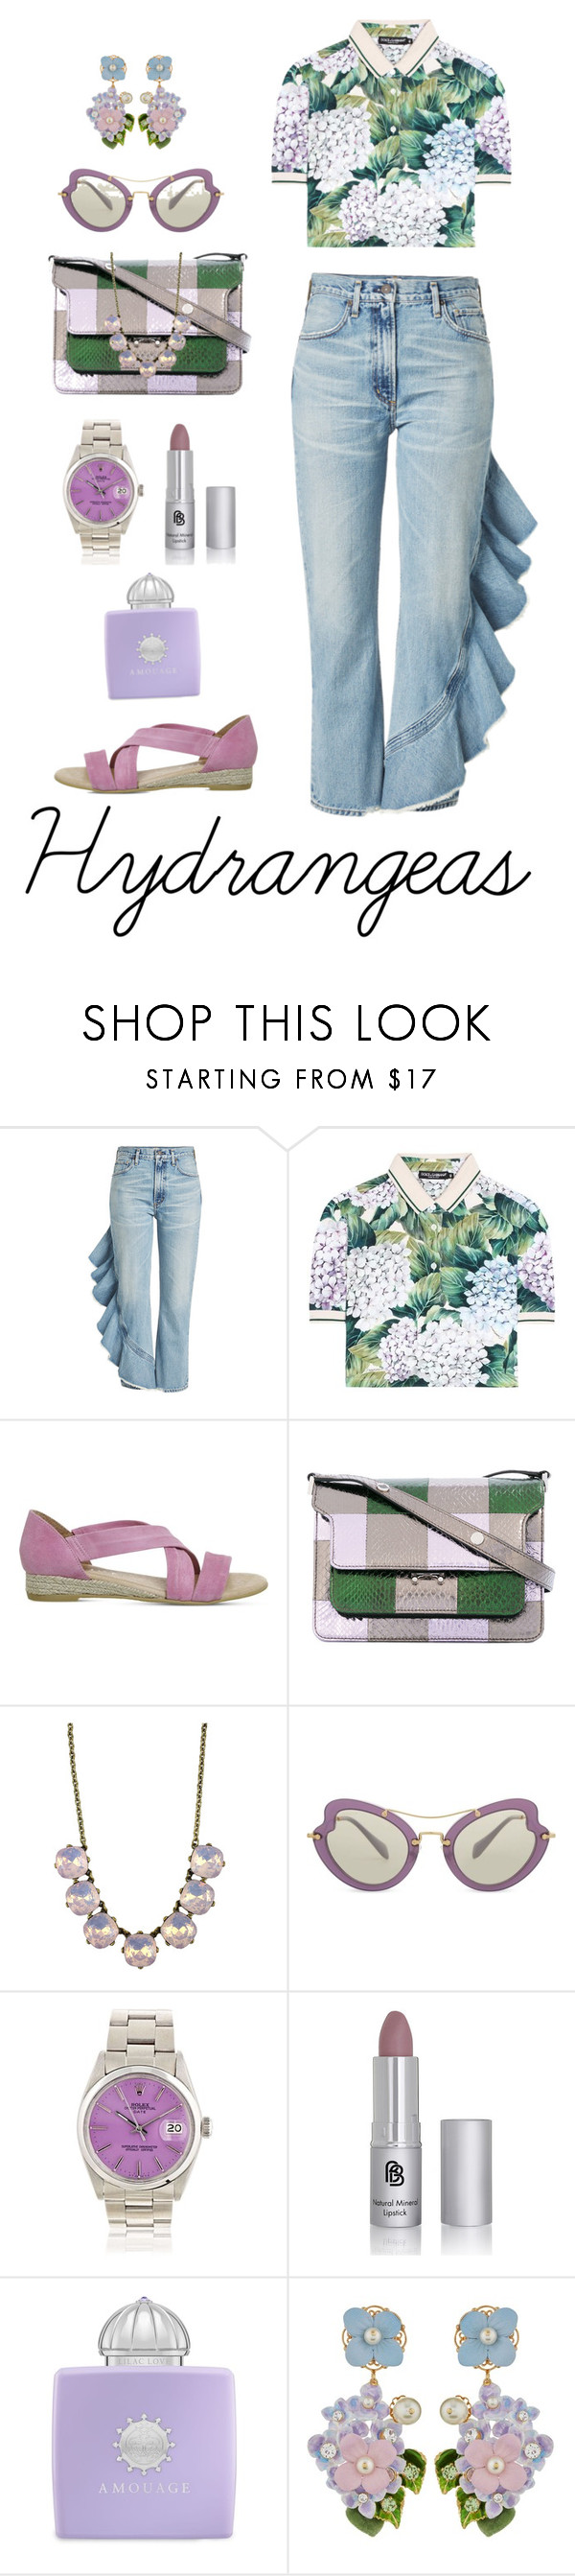 """""""Summertime Florals"""" by shamrockclover ❤ liked on Polyvore featuring Citizens of Humanity, Dolce&Gabbana, Office, Marni, Miu Miu and AMOUAGE"""